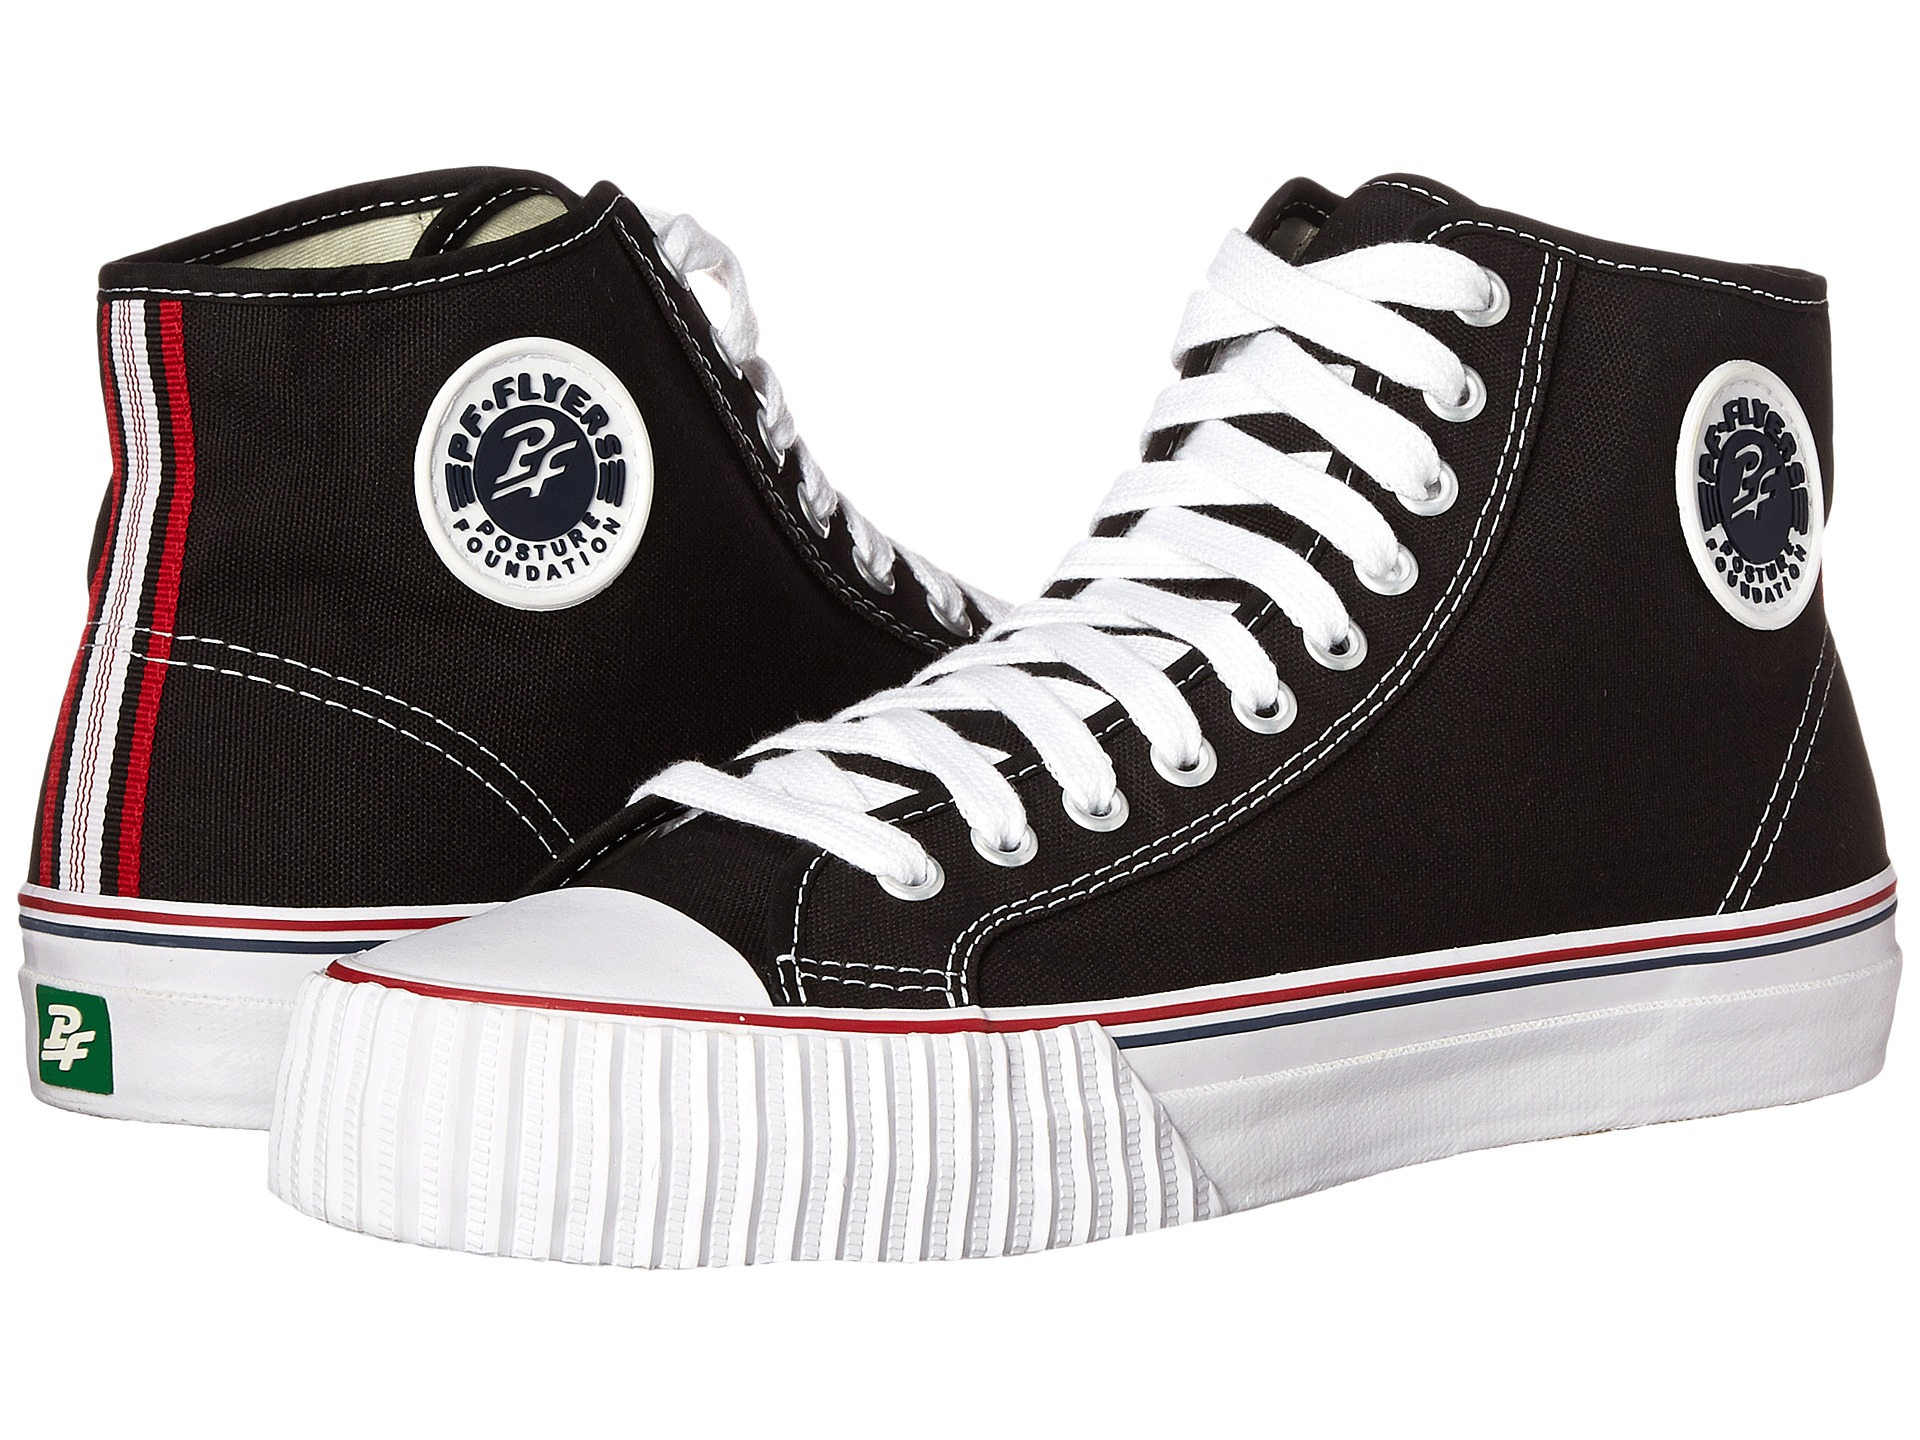 PF Flyers Center Hi Re-Issue - Zappos.com Free Shipping ...